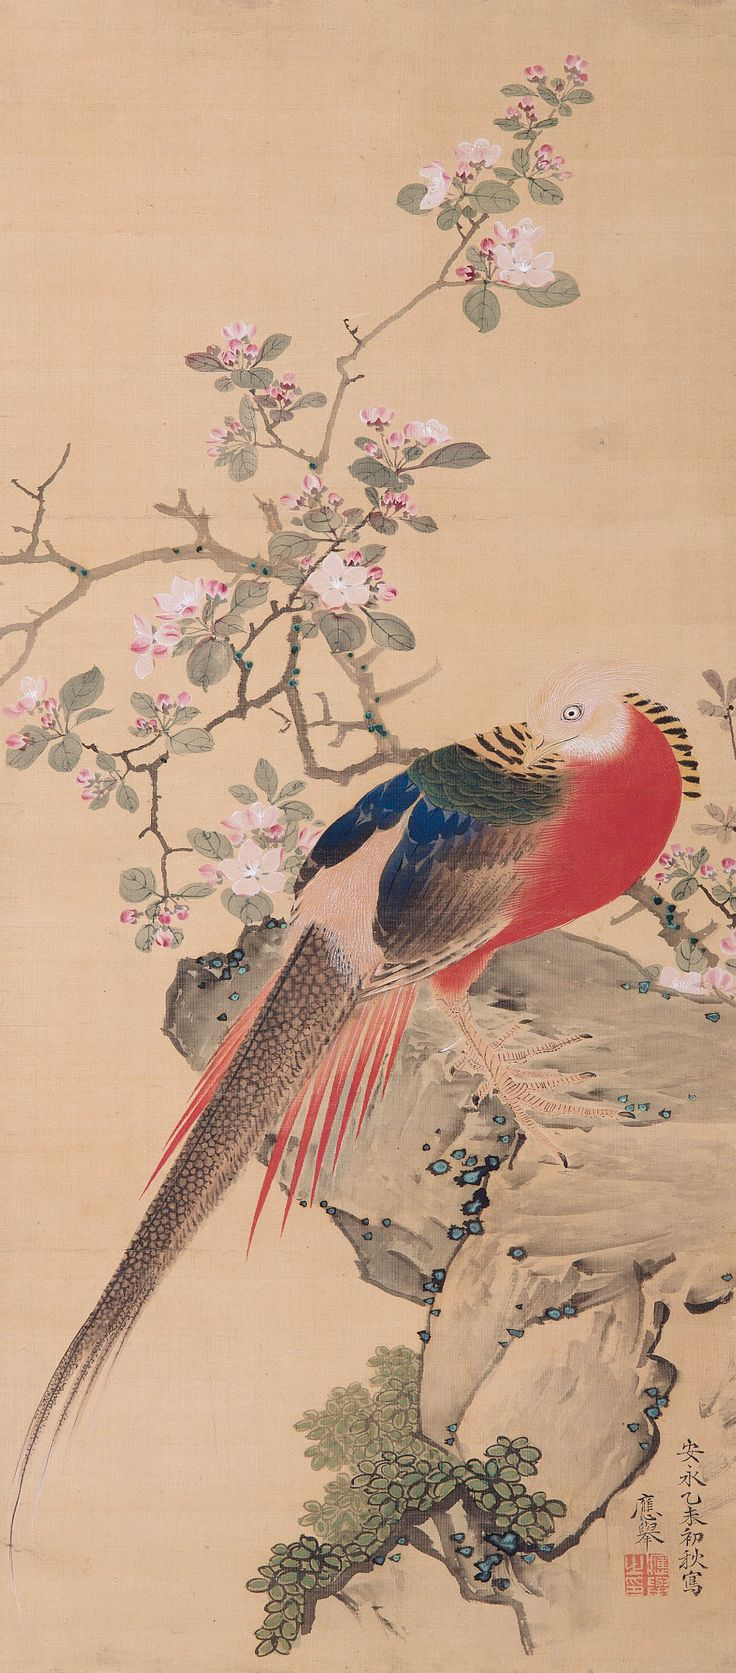 Aronia and a Golden Cockerel c. 1775 Color on silk, hanging scroll 70.0 x 30.0 cm ARTIST Maruyama Okyo (1733-1795) | TOKYO FUJI ART MUSEUM